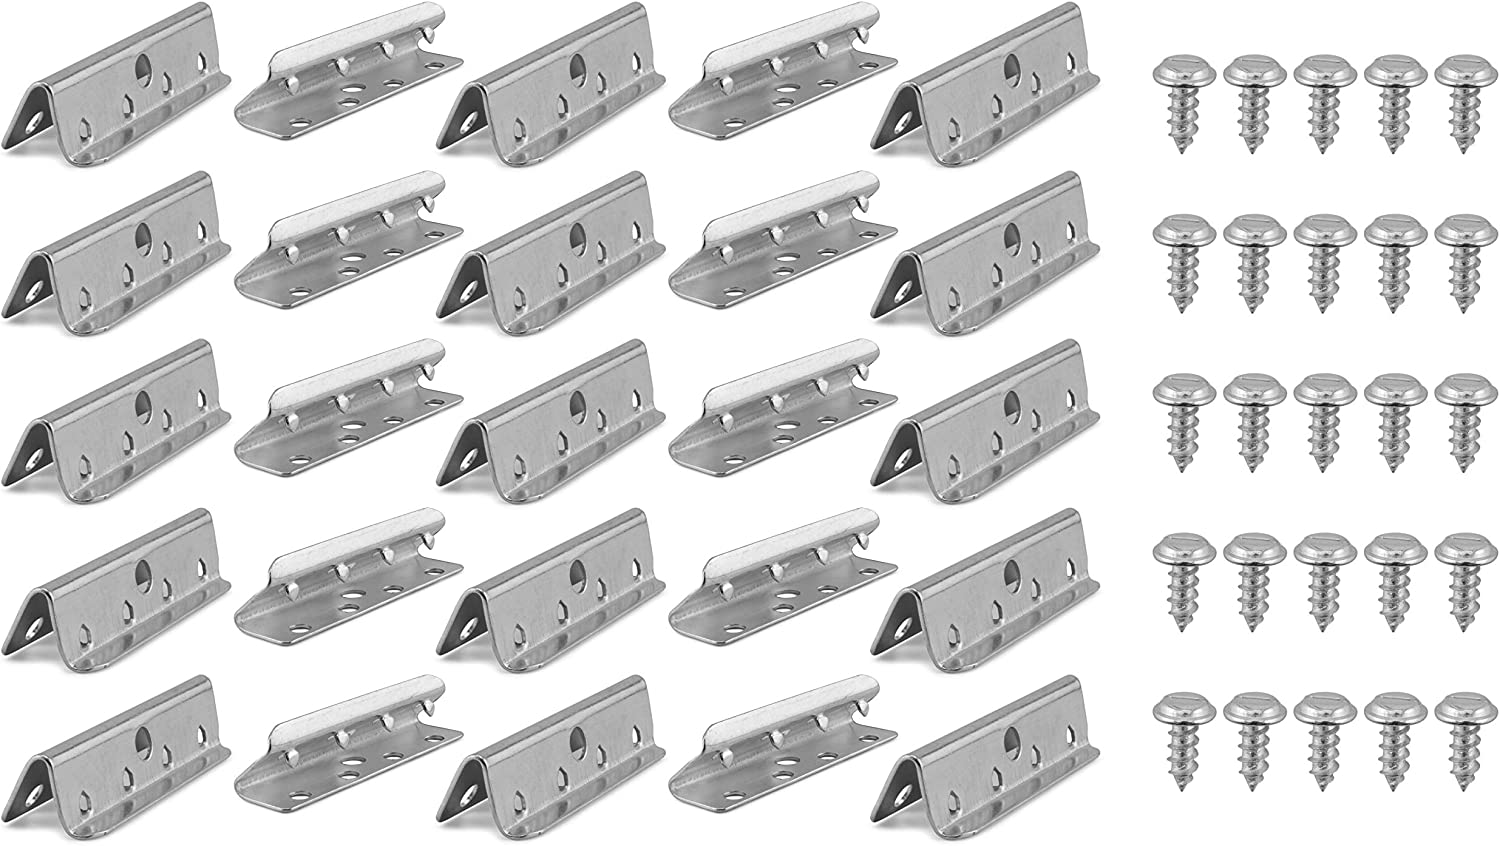 Cornucopia Metal Free shipping on posting reviews Chair Webbings Clips Replacement 25-Pack Uph ; Selling and selling